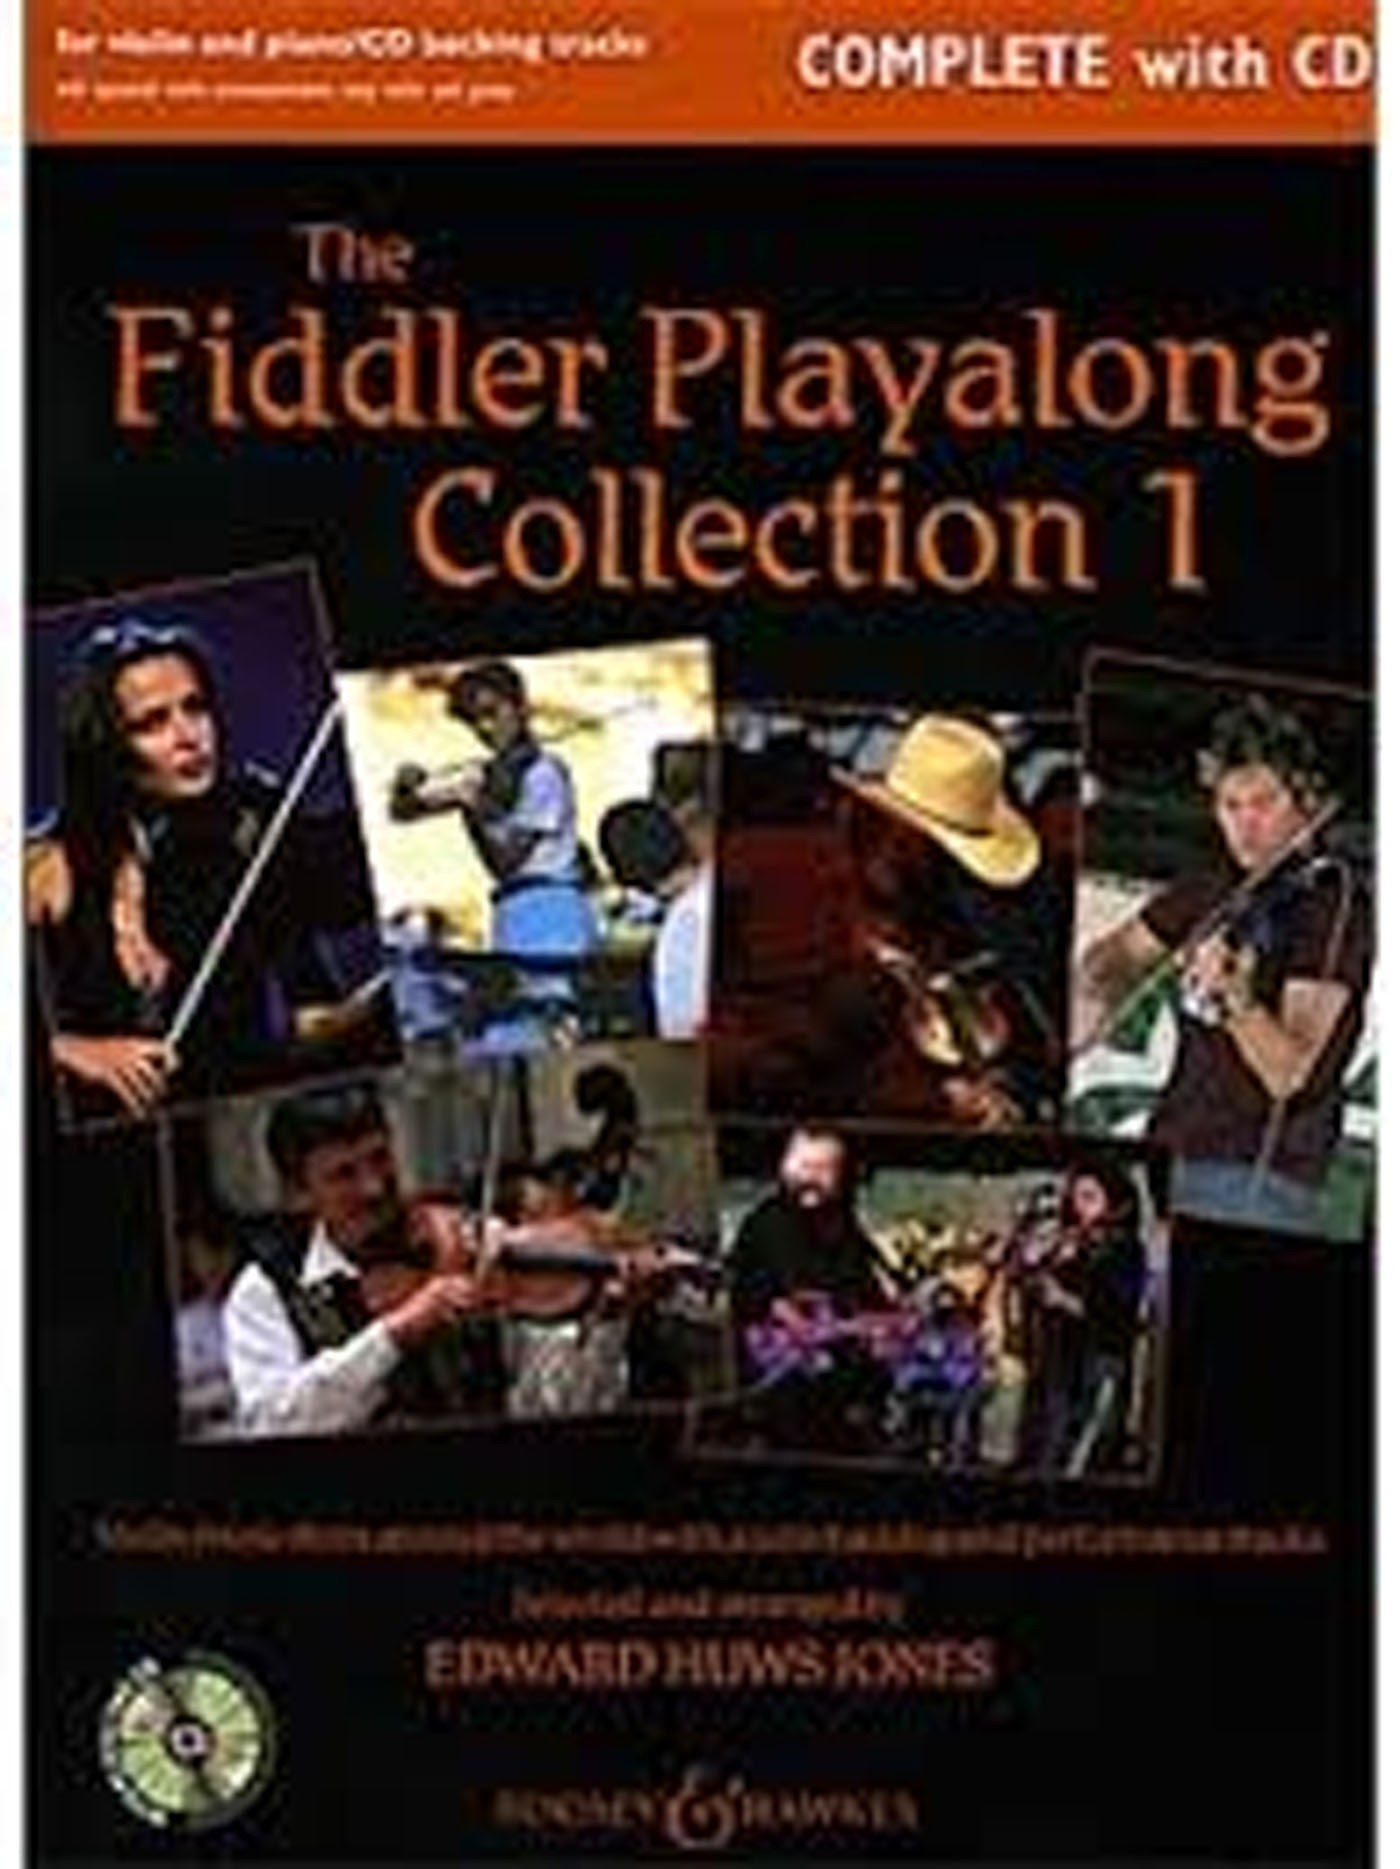 The Fiddler Playalong Collection 1 Book CD Violin Piano Edward Huws Jones S147